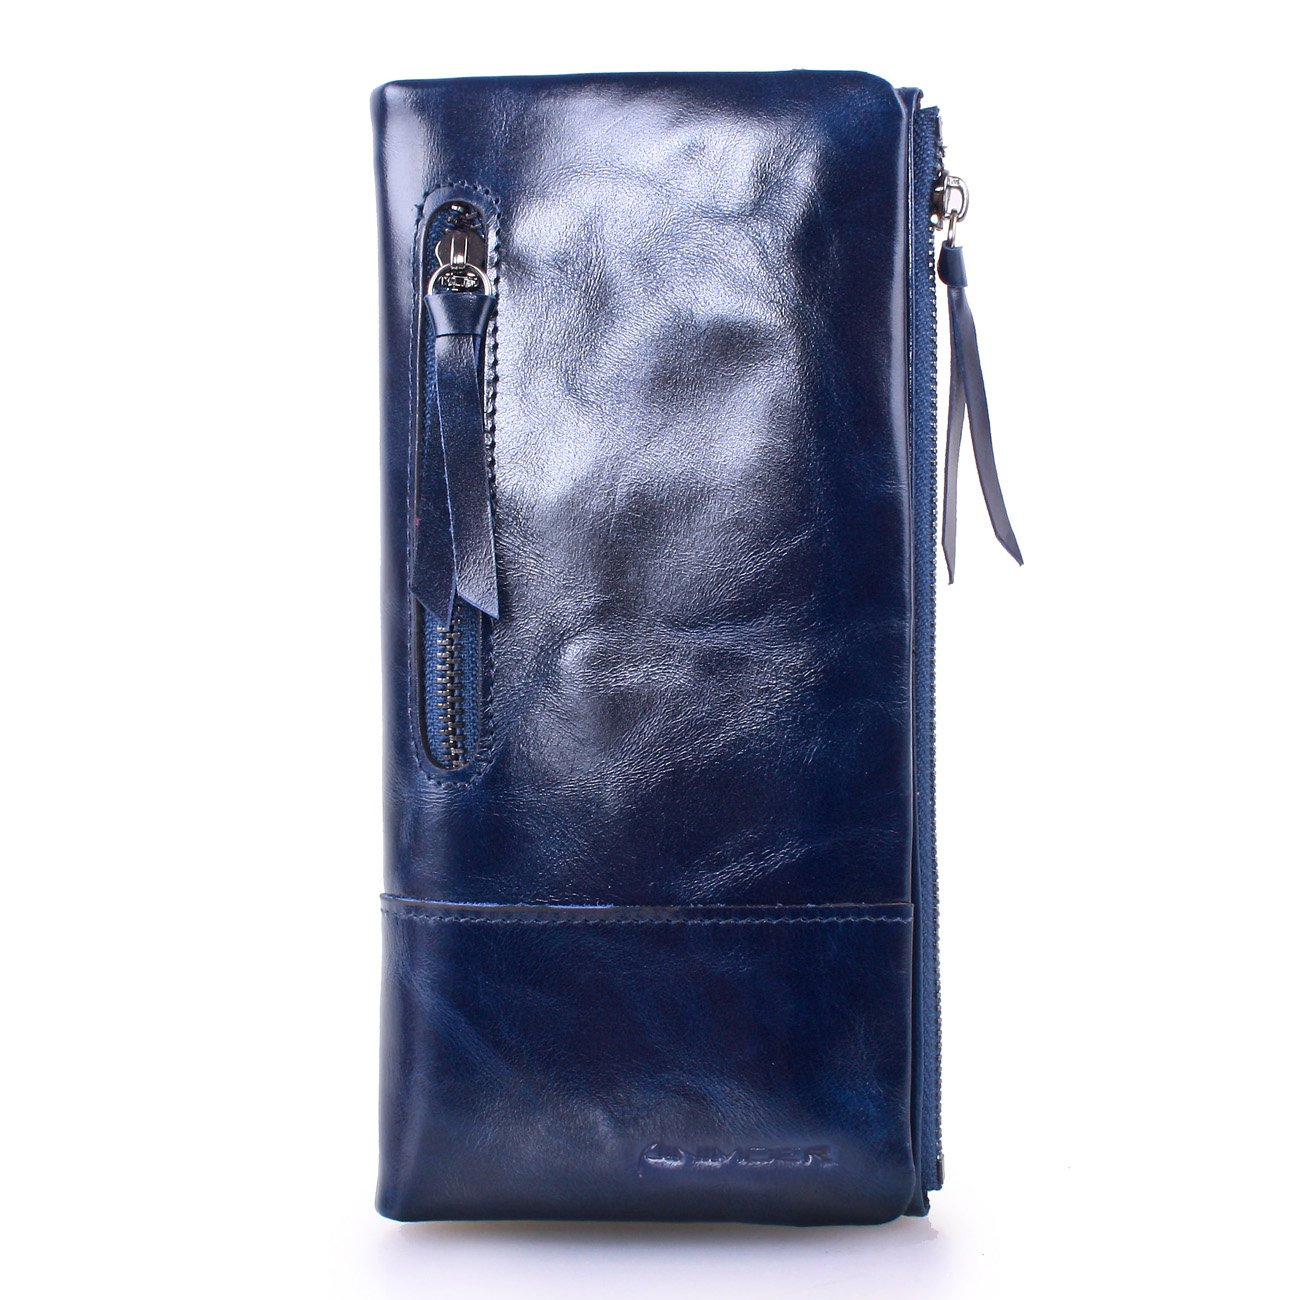 AINIMOER New Women Fashion Waxy Leather Vintage Billfold Long Wallet Casual Simple Style Mini Clutch Card Holder Zipper Closure Money Clip(Blue)